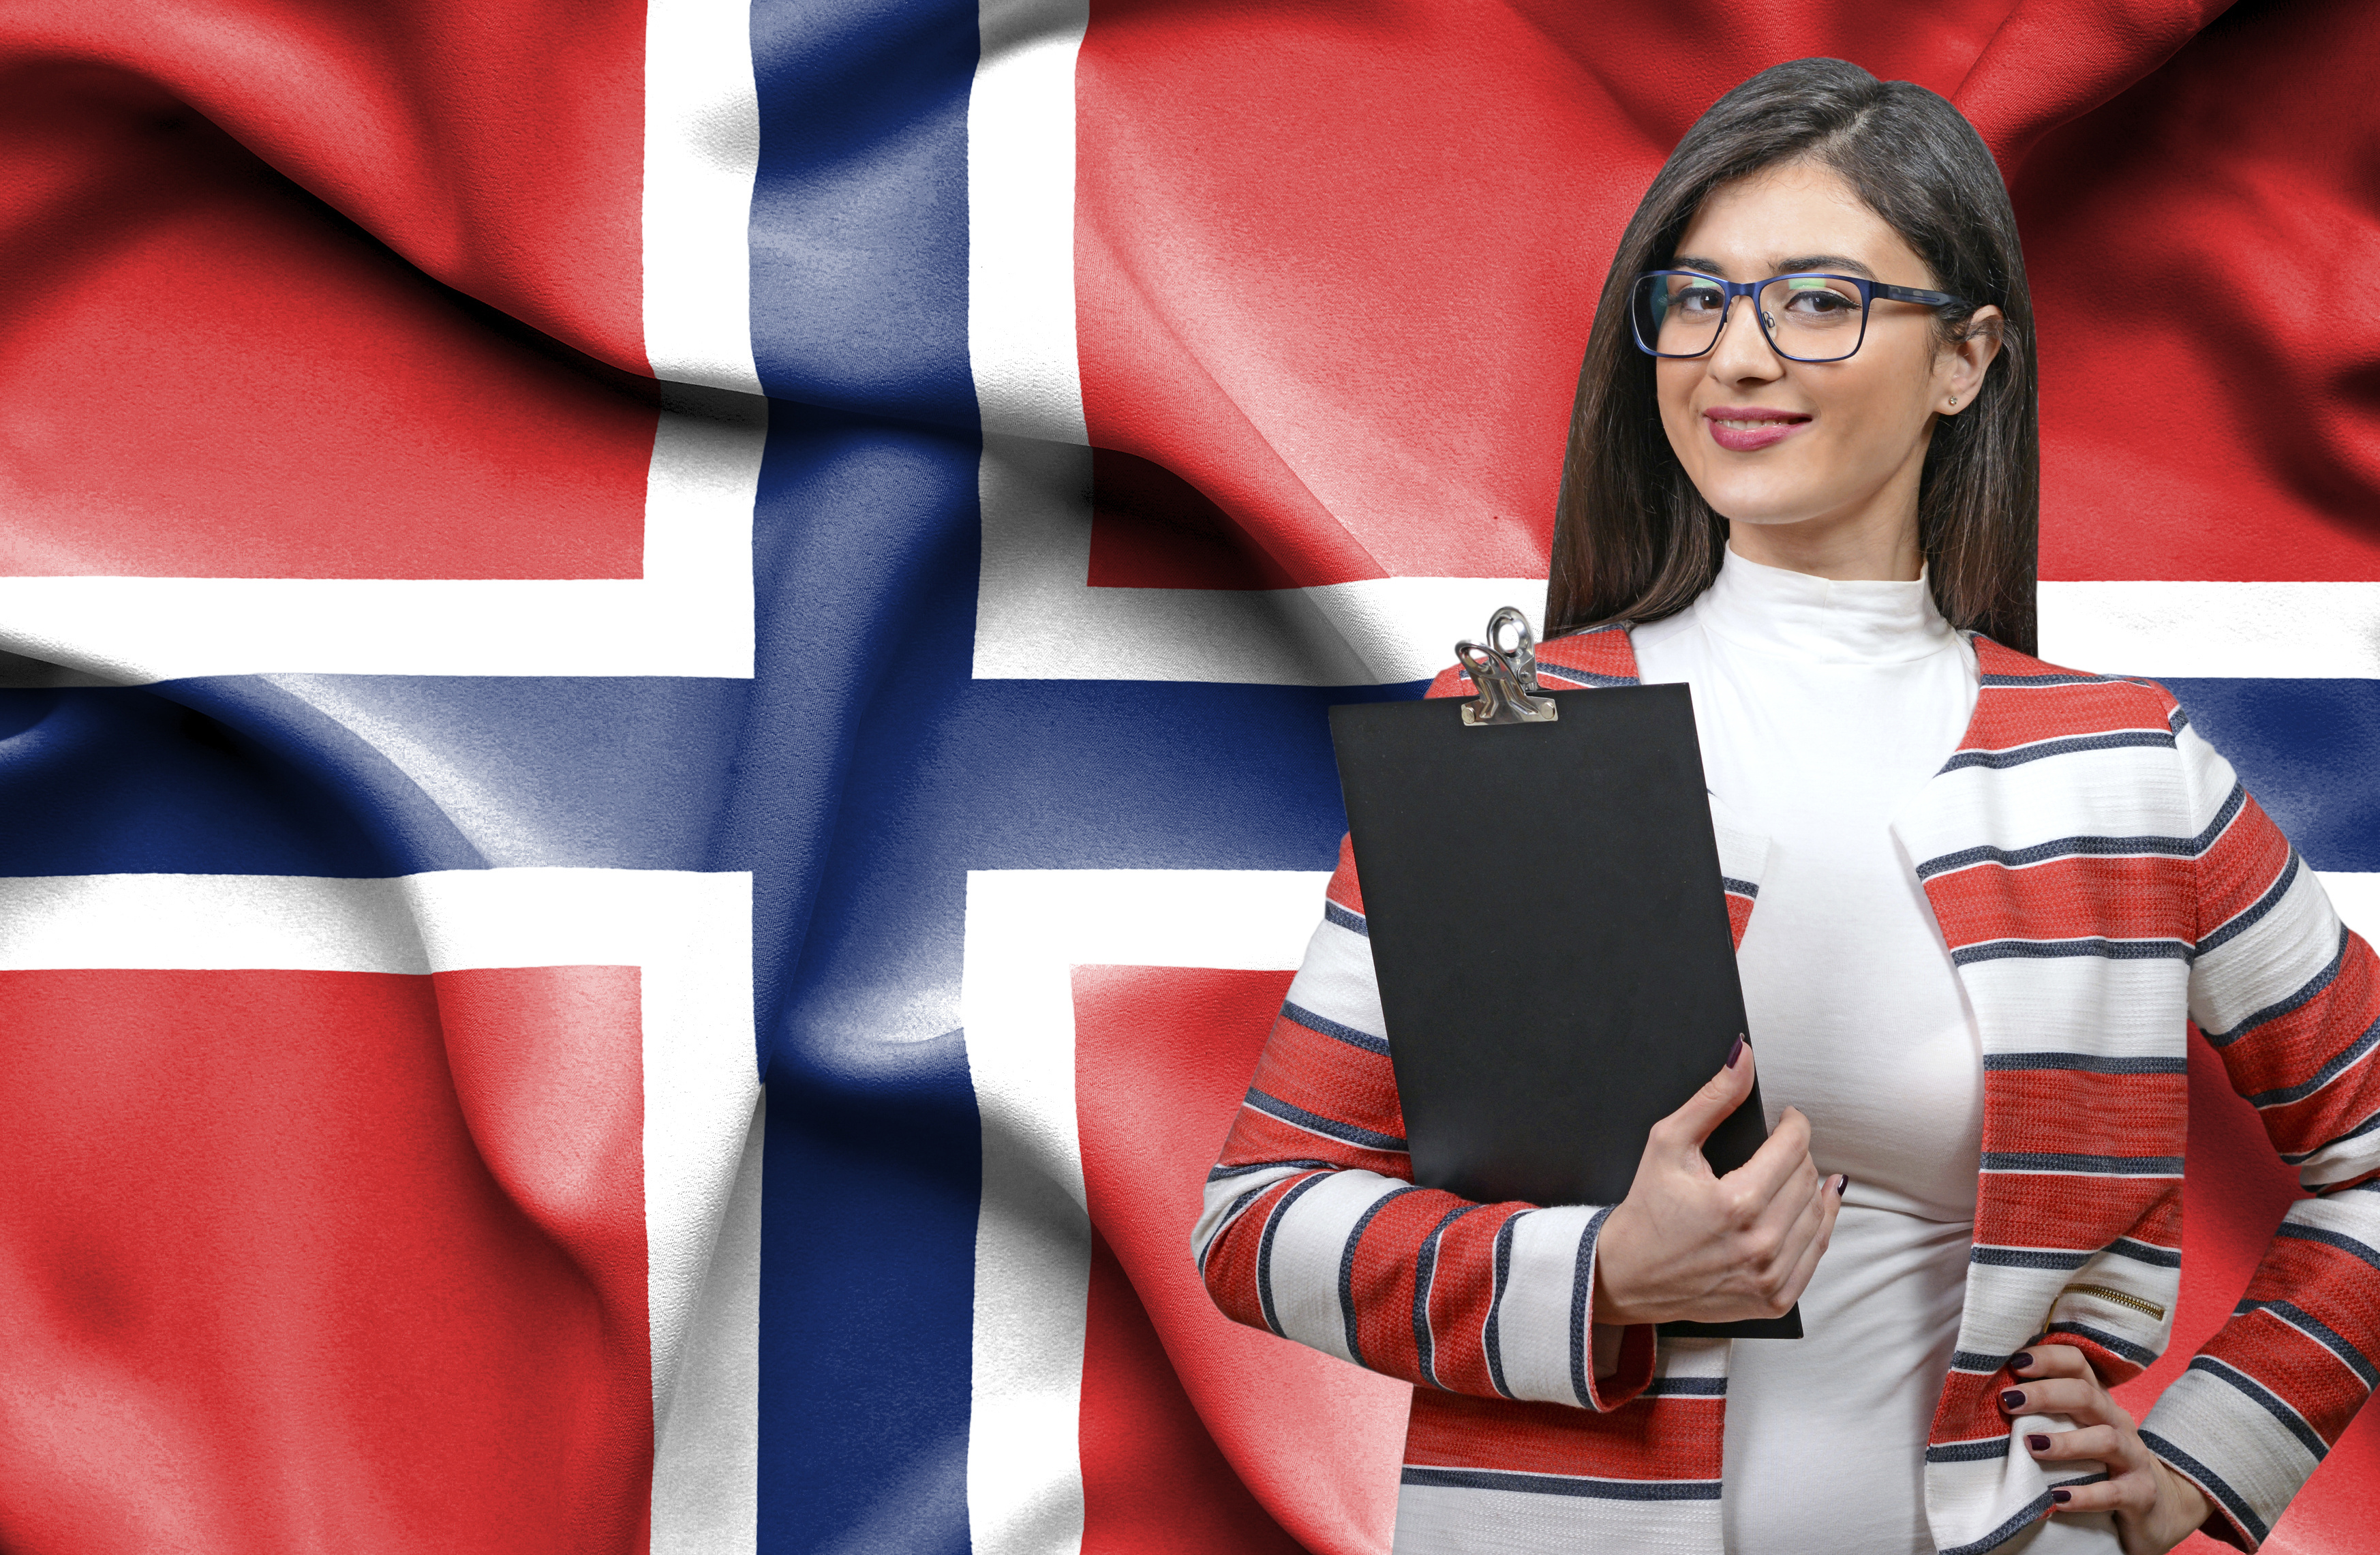 Norway's sovereign wealth fund pushes for more women on company boards